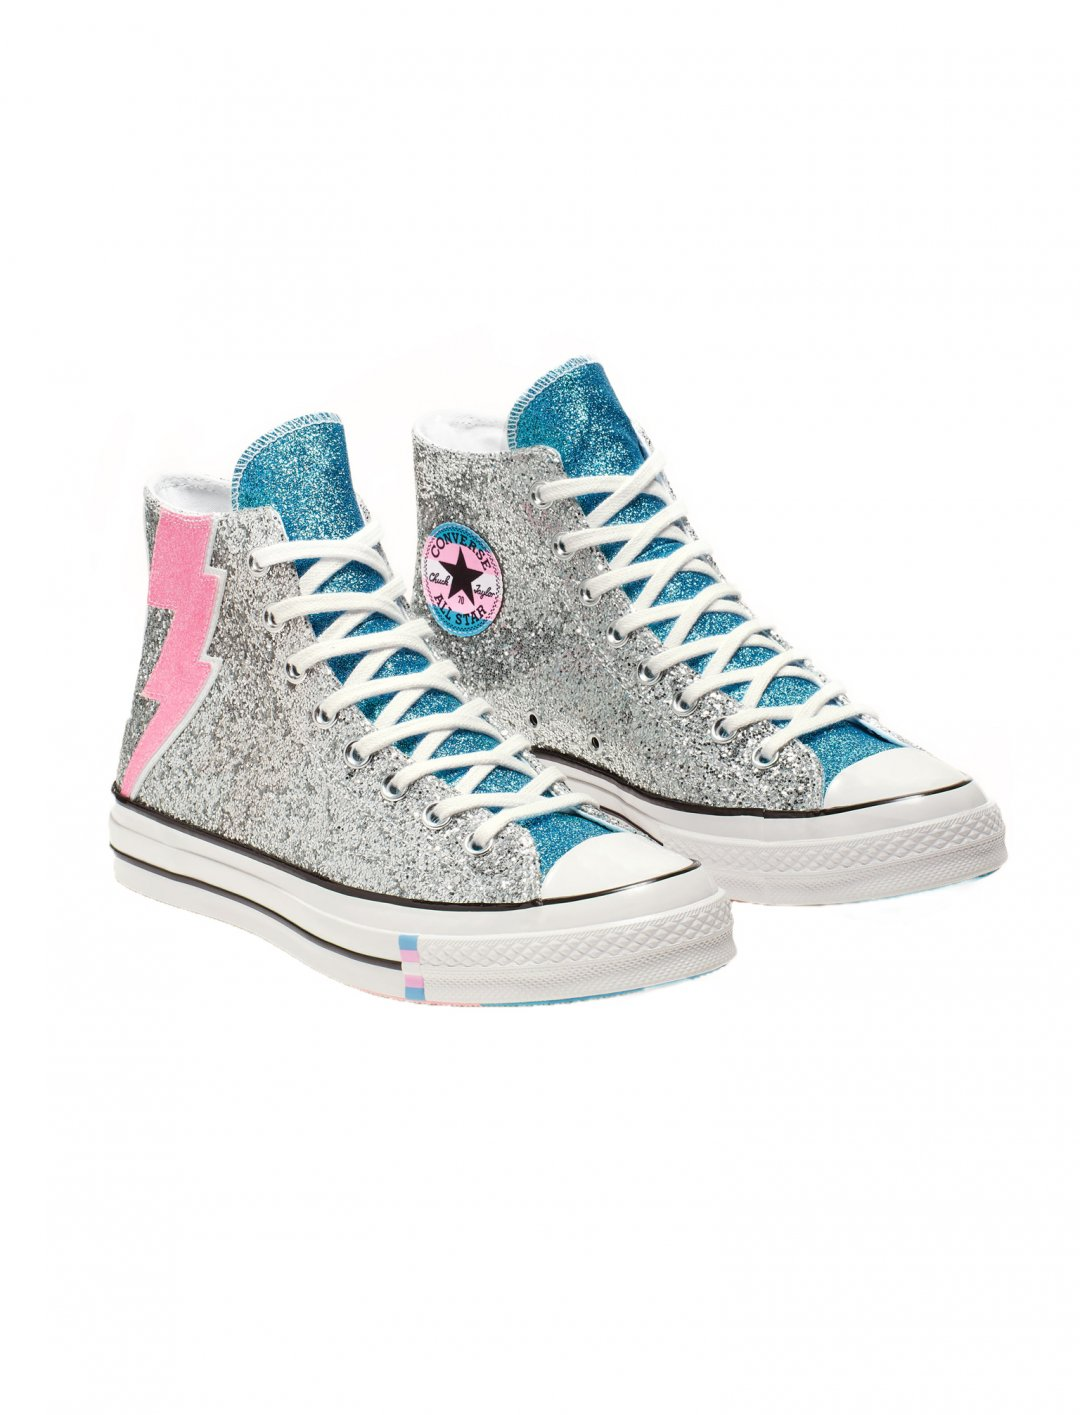 "Chuck 70 Pride High Top {""id"":12,""product_section_id"":1,""name"":""Shoes"",""order"":12} Converse"